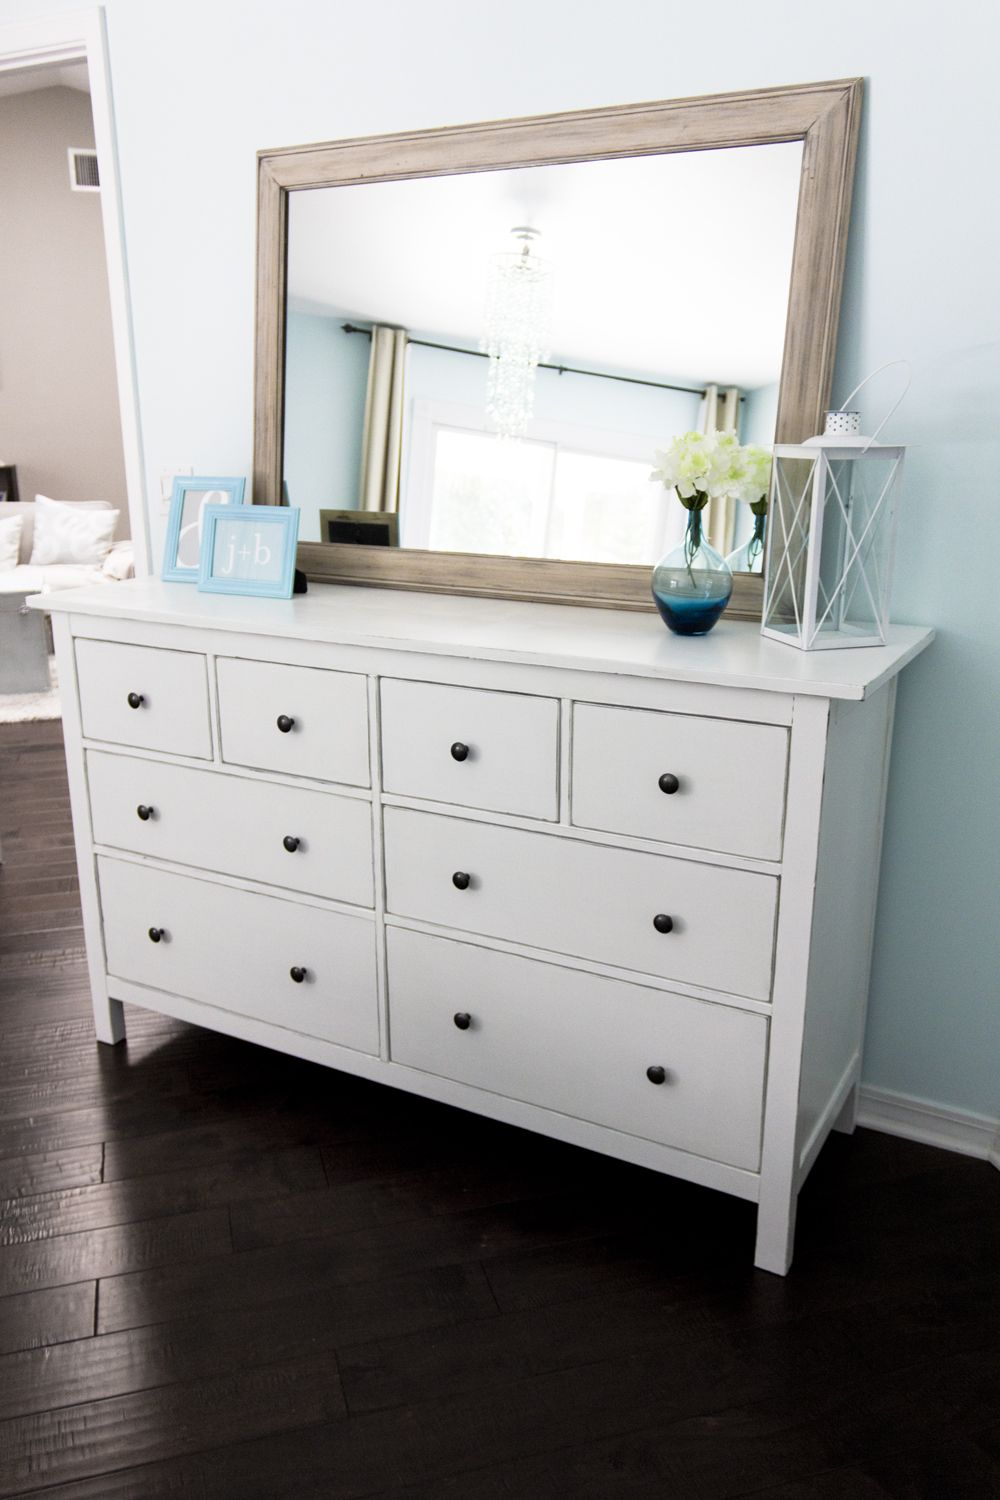 Since the first hemnes dresser moved up to the girls' room, should I get a second one for the